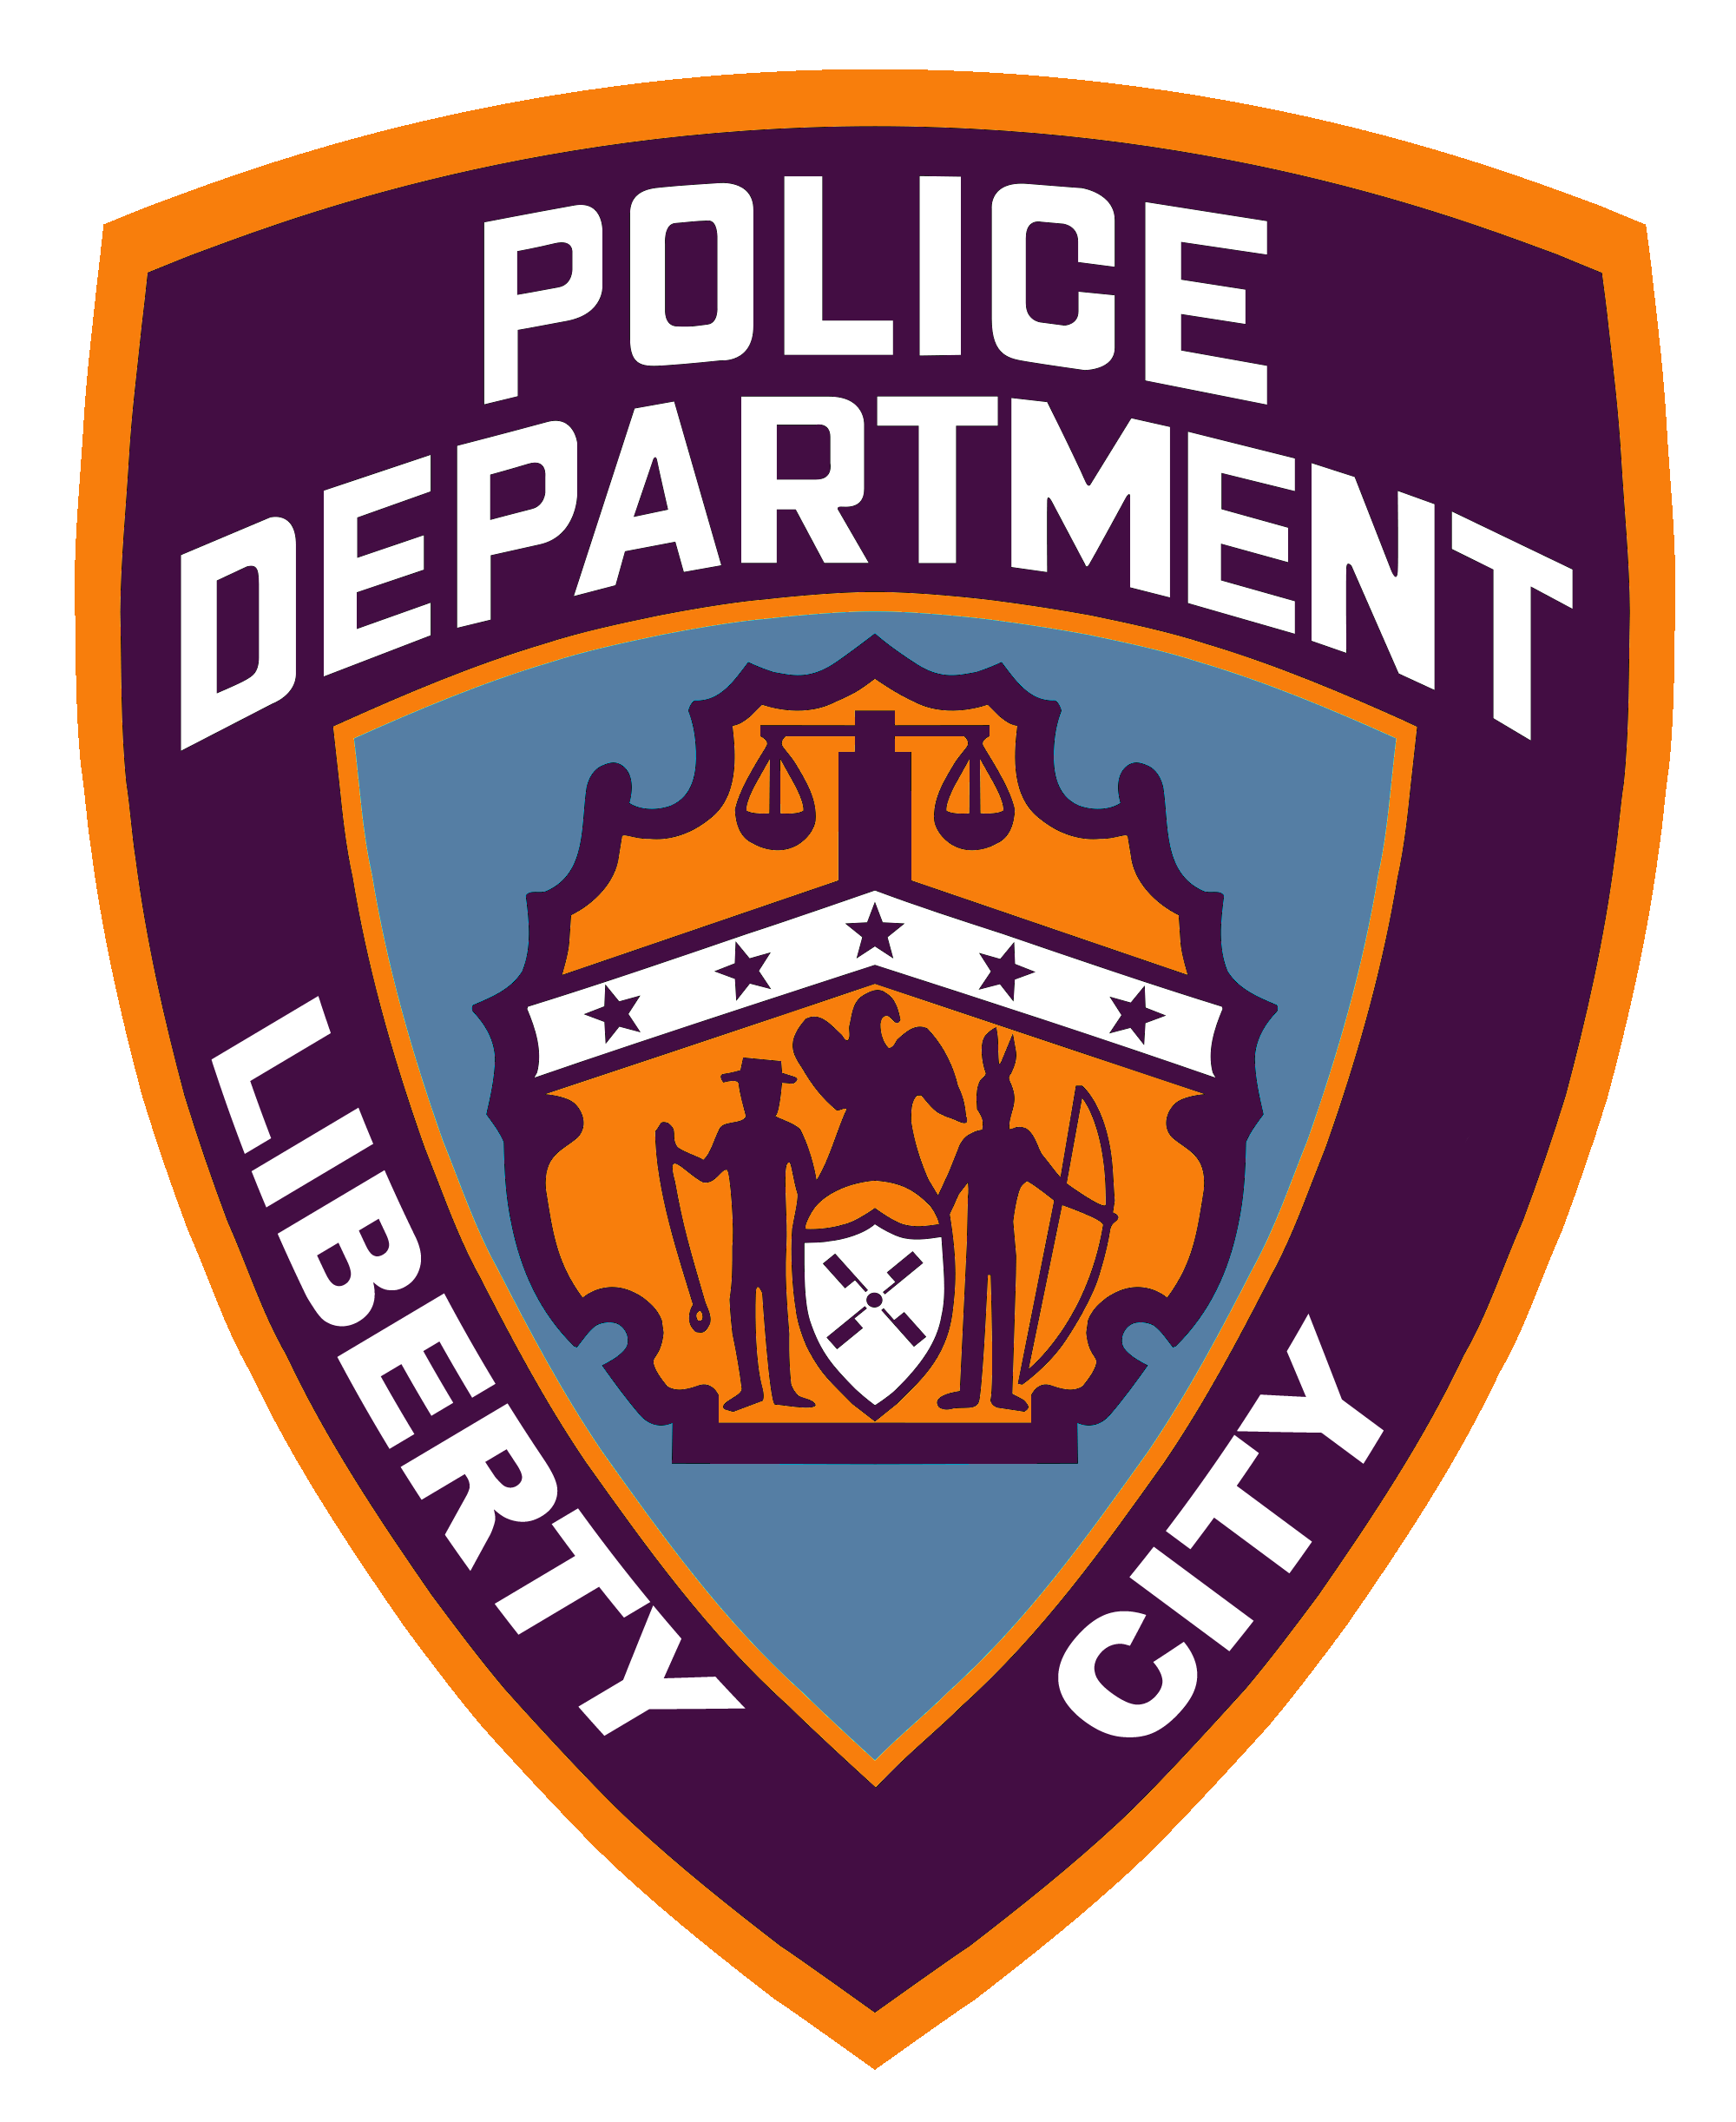 liberty city police department gta wiki the grand theft auto wiki gta iv san andreas vice. Black Bedroom Furniture Sets. Home Design Ideas